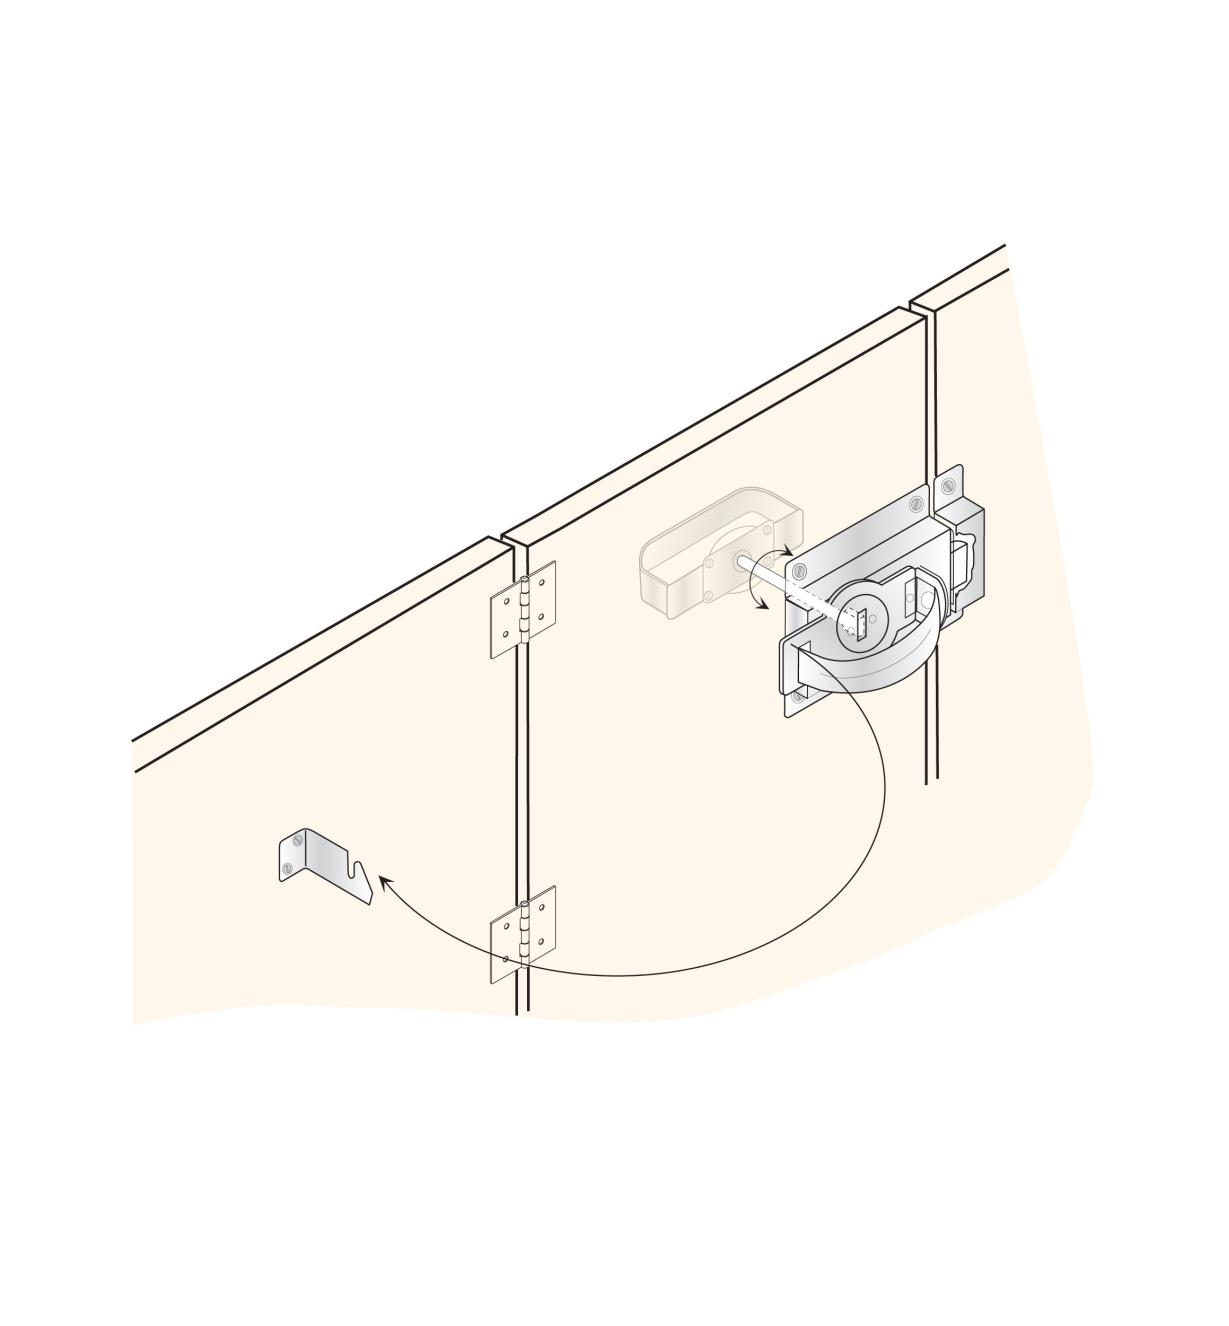 Ghosted illustration shows how the gate latch works when installed